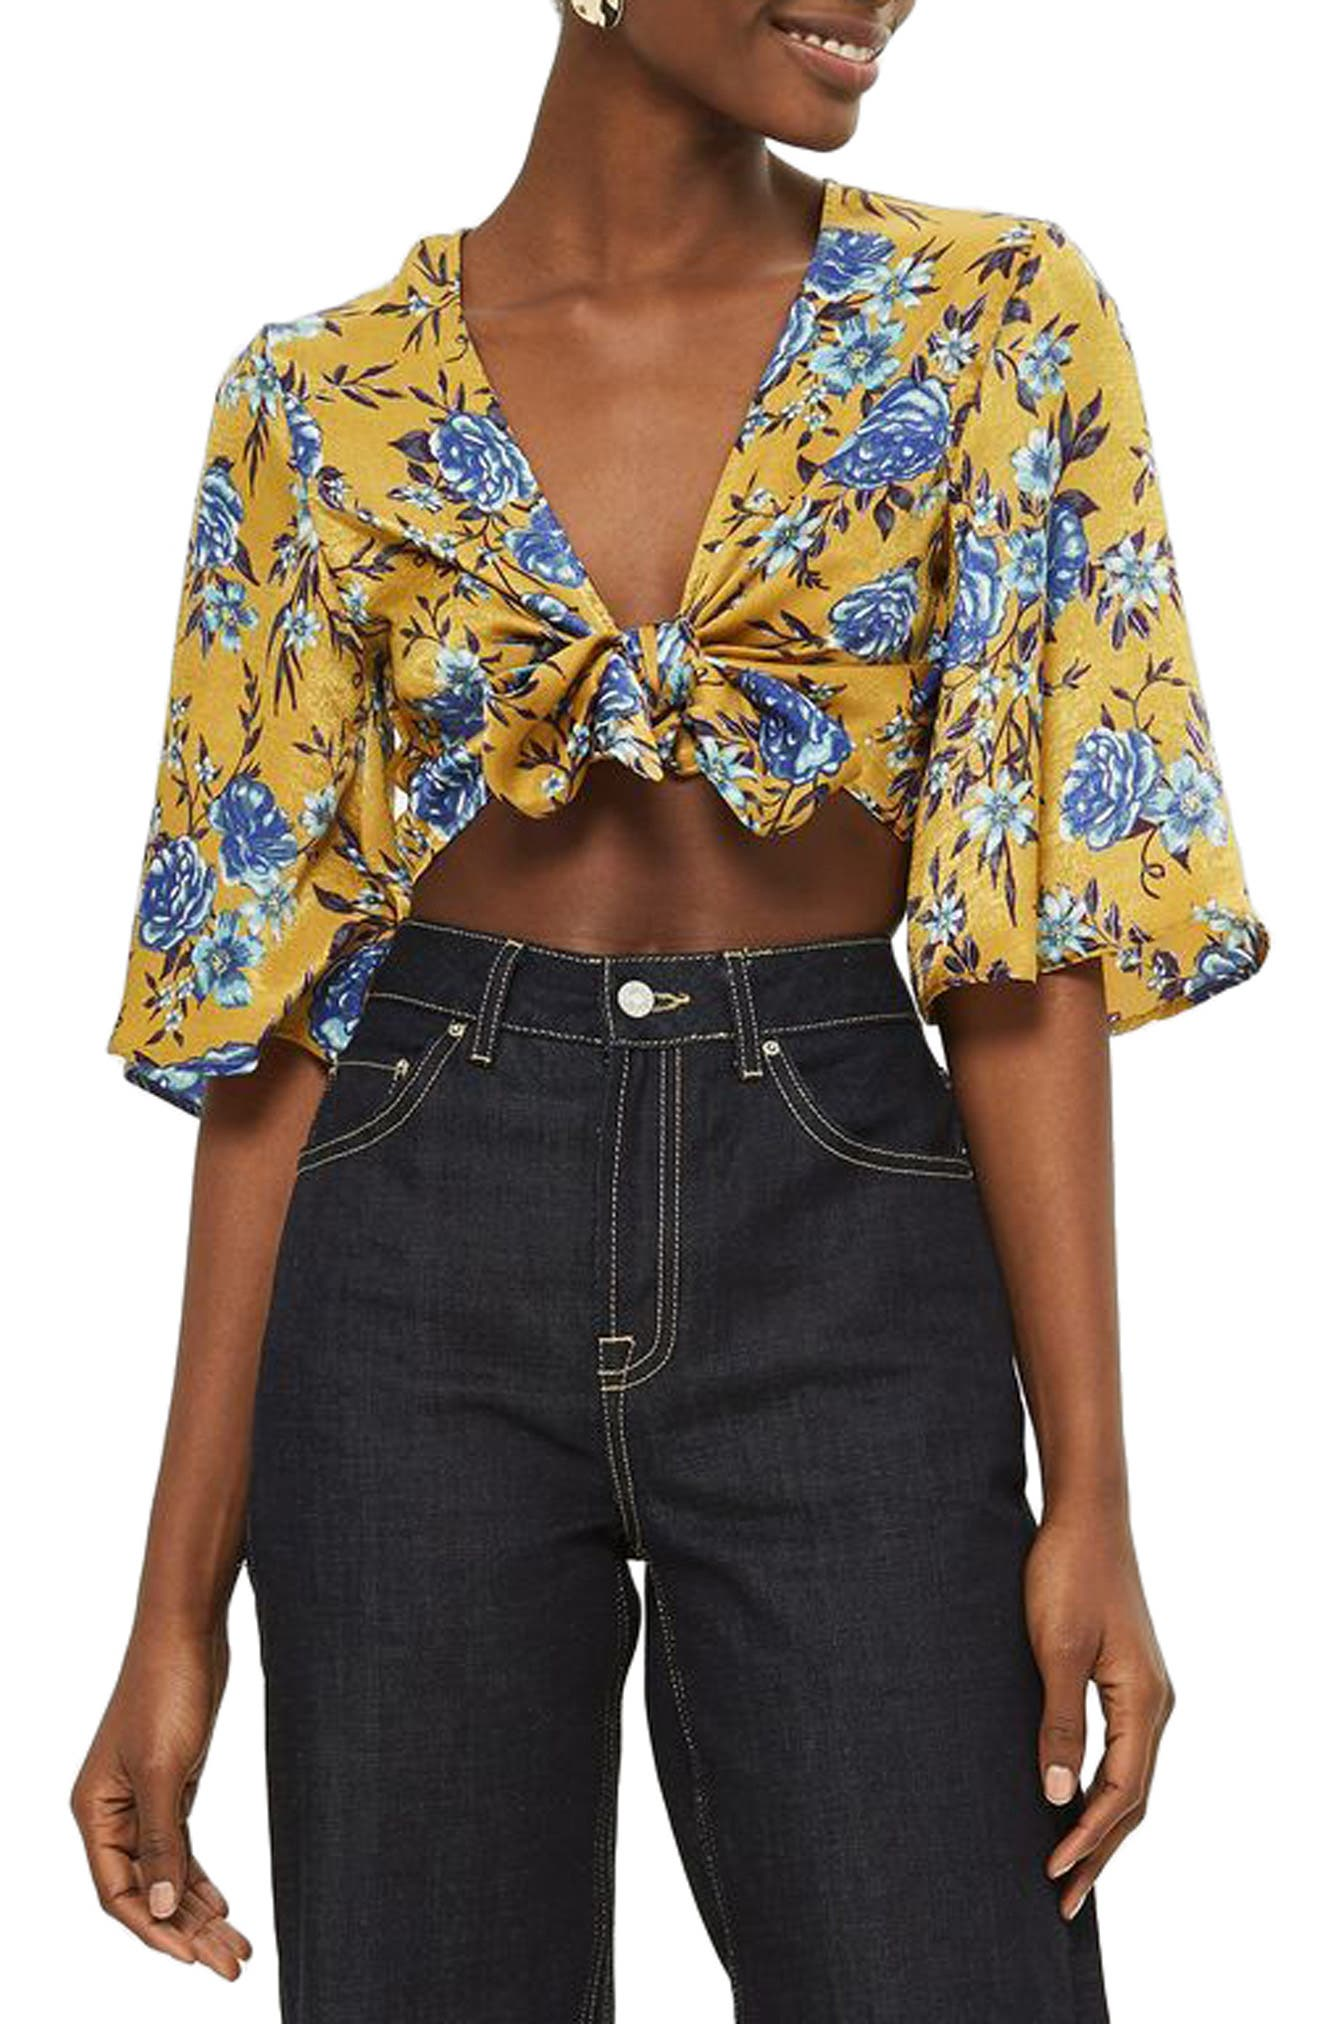 Topshop Floral Knot Front Crop Top